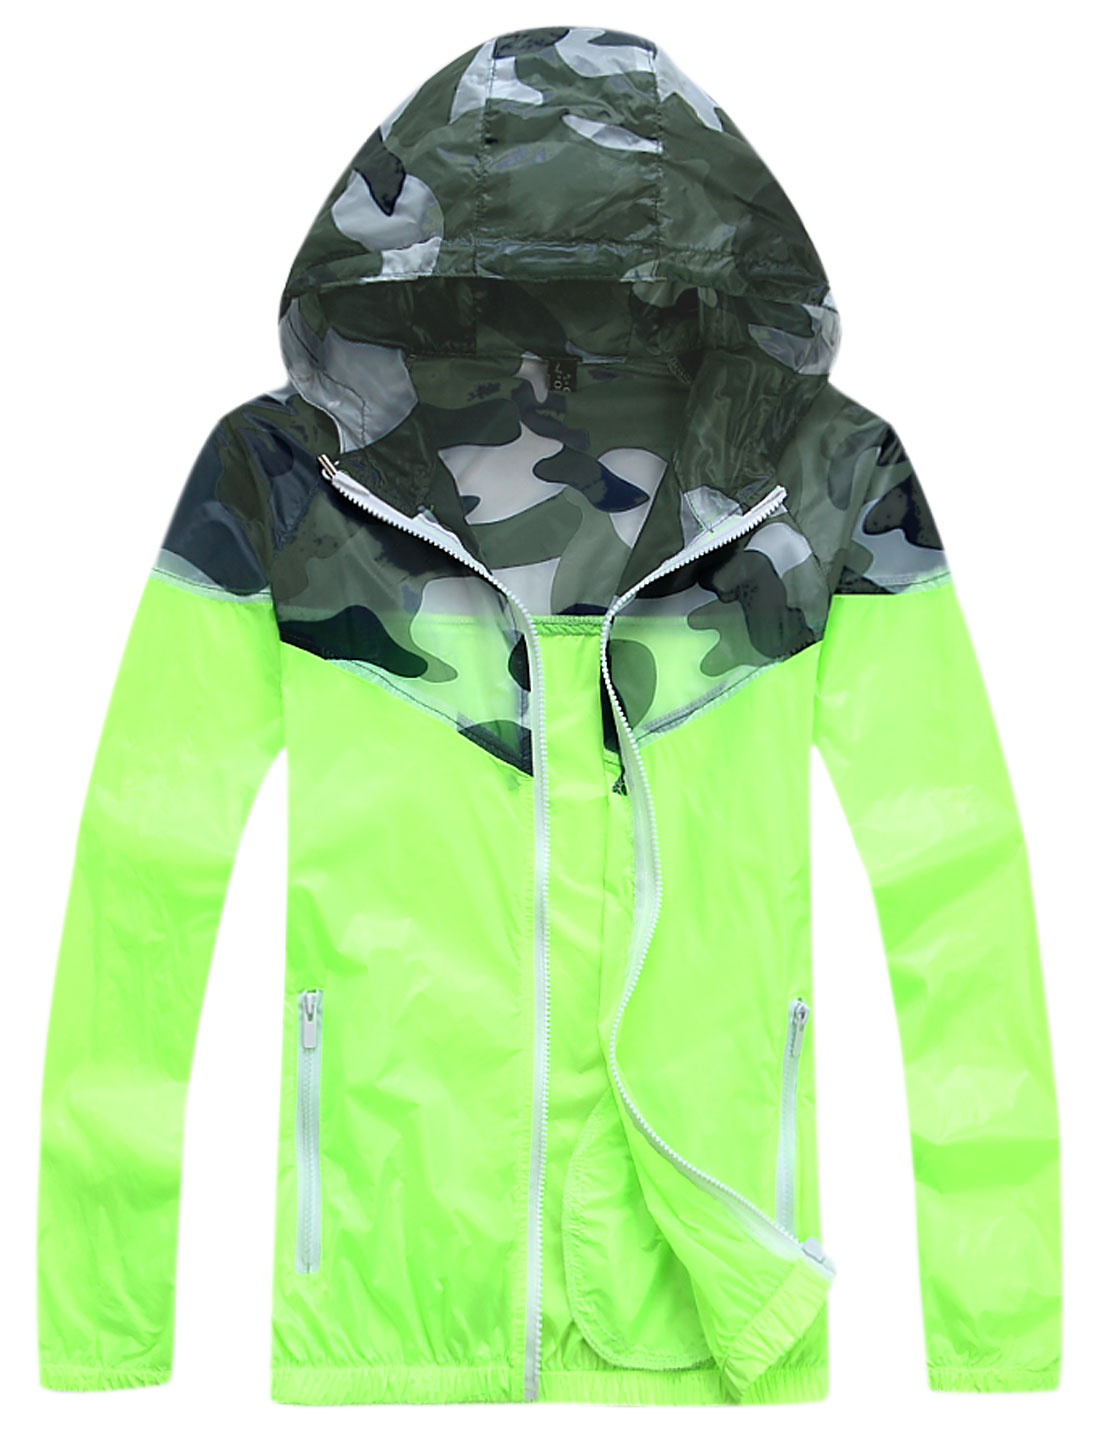 Men Long Sleeves Camouflage Pattern Thin Hooded Jacket w Pocket Lime Green M